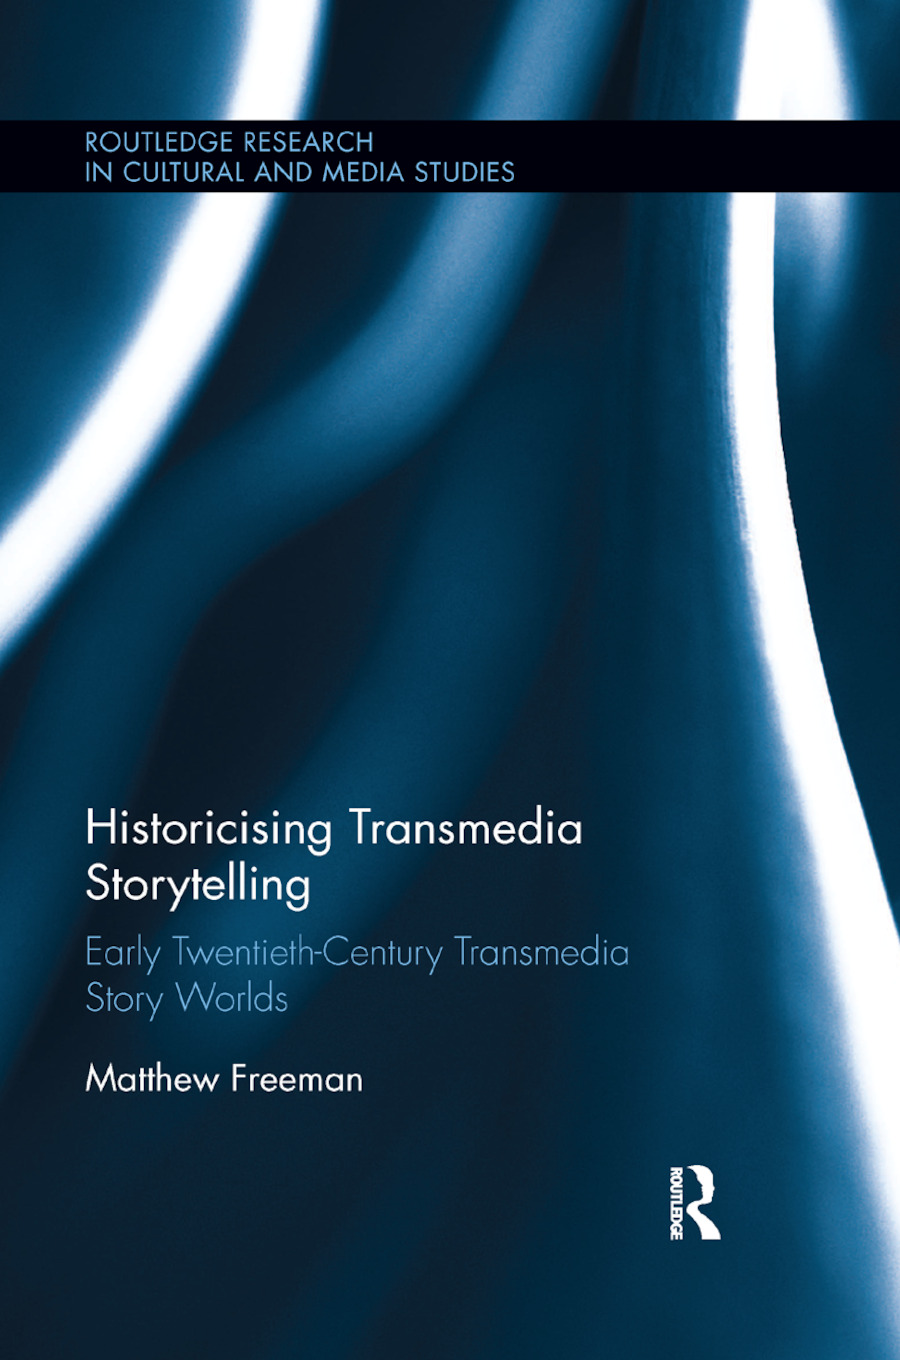 Historicising Transmedia Storytelling: Early Twentieth-Century Transmedia Story Worlds book cover